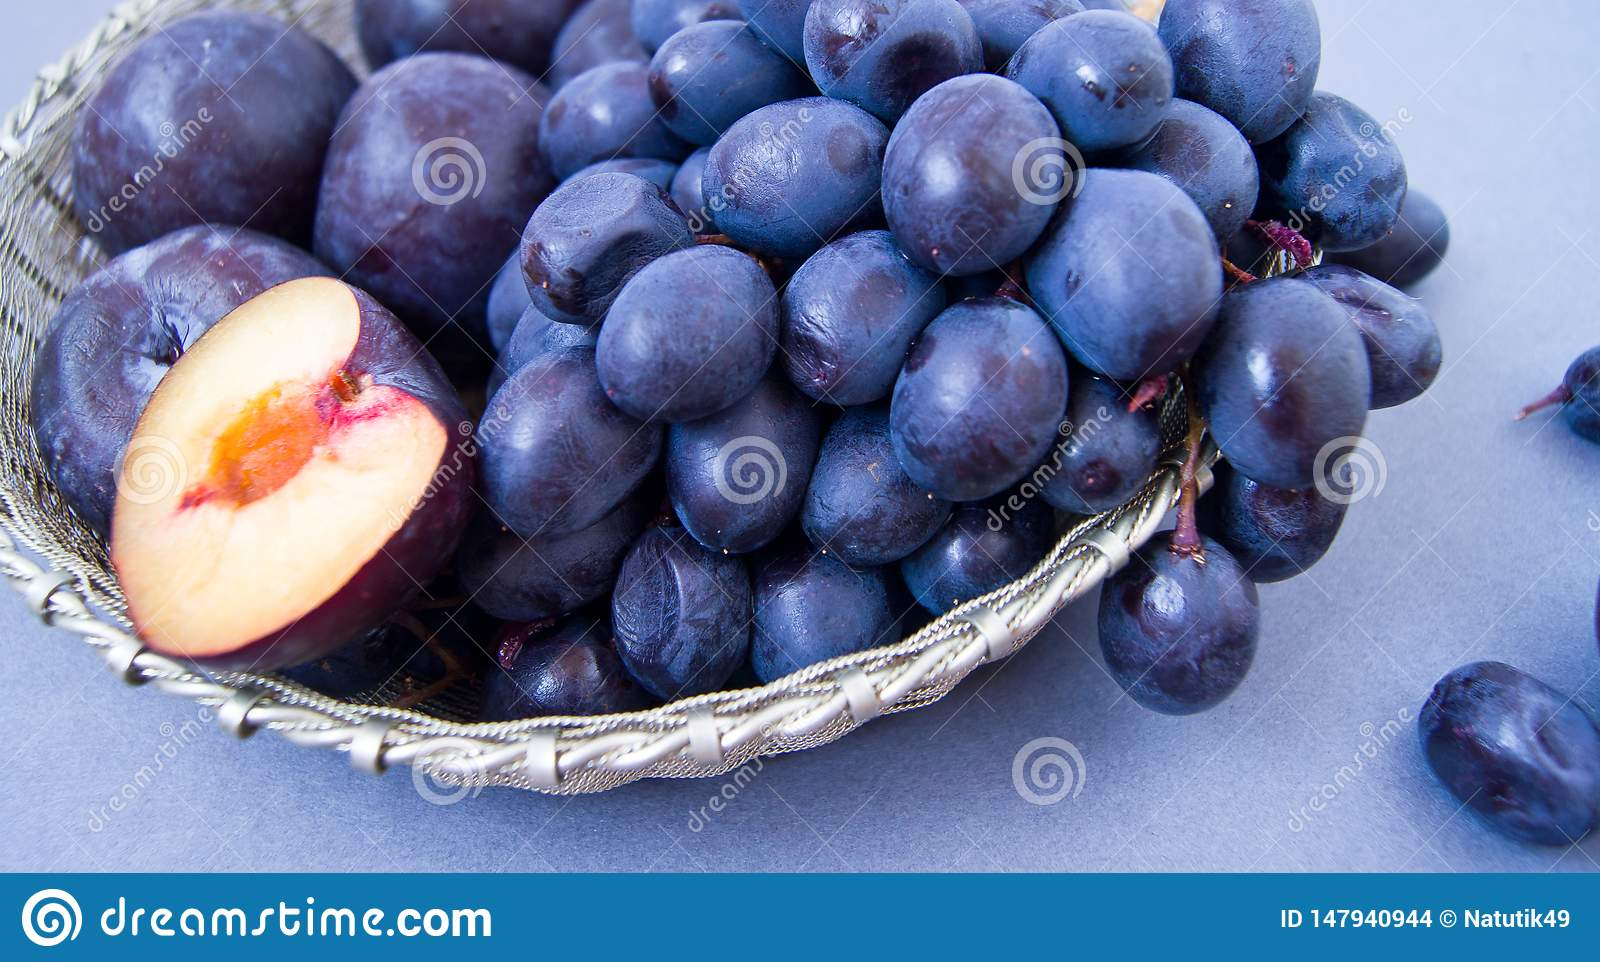 Grapes and plums in a silver bowl